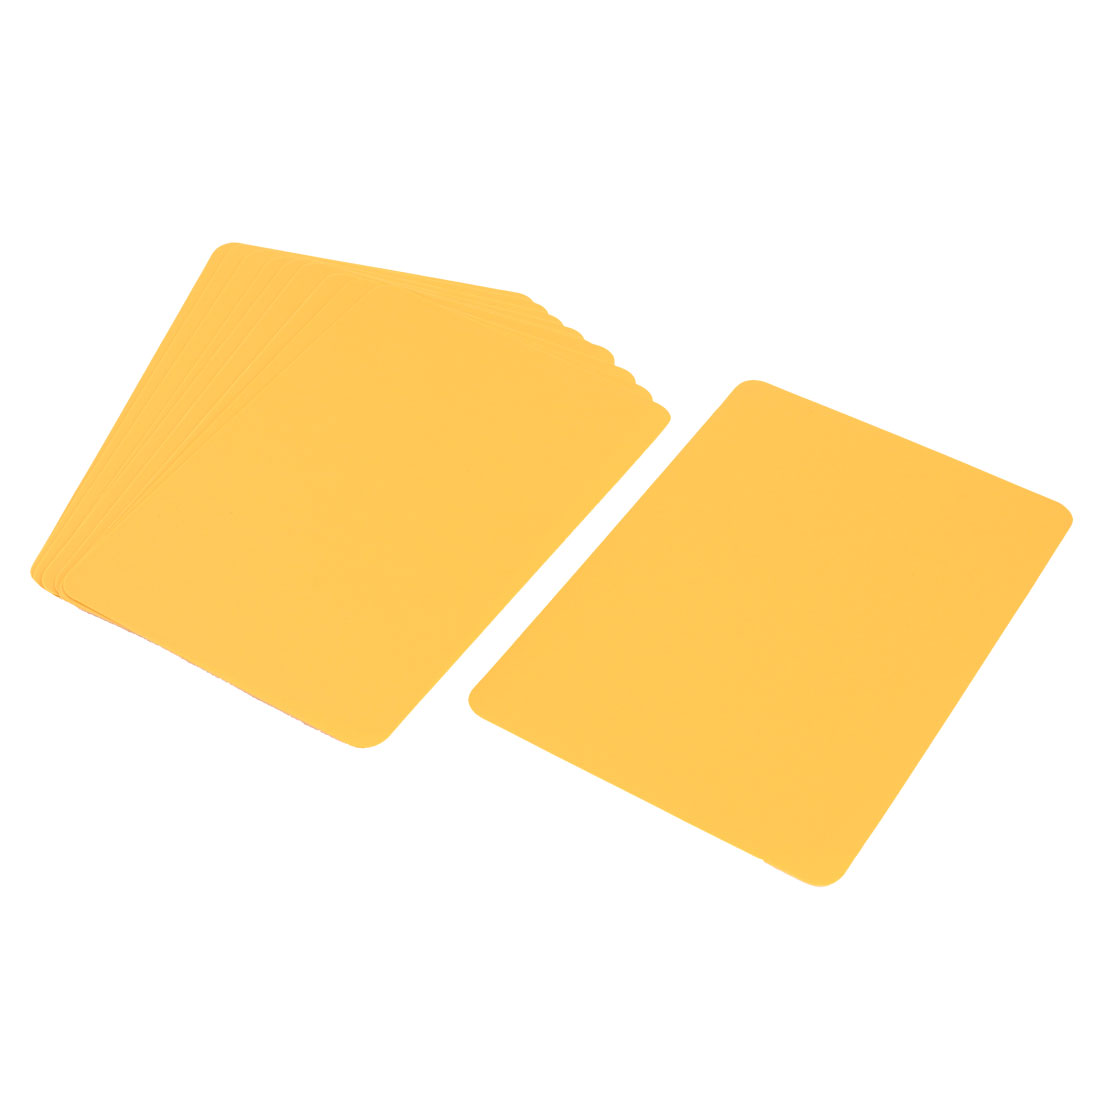 10 Pcs Yellow Rectangle Shaped Plastic Paper Writing Boards 172mmx122mm